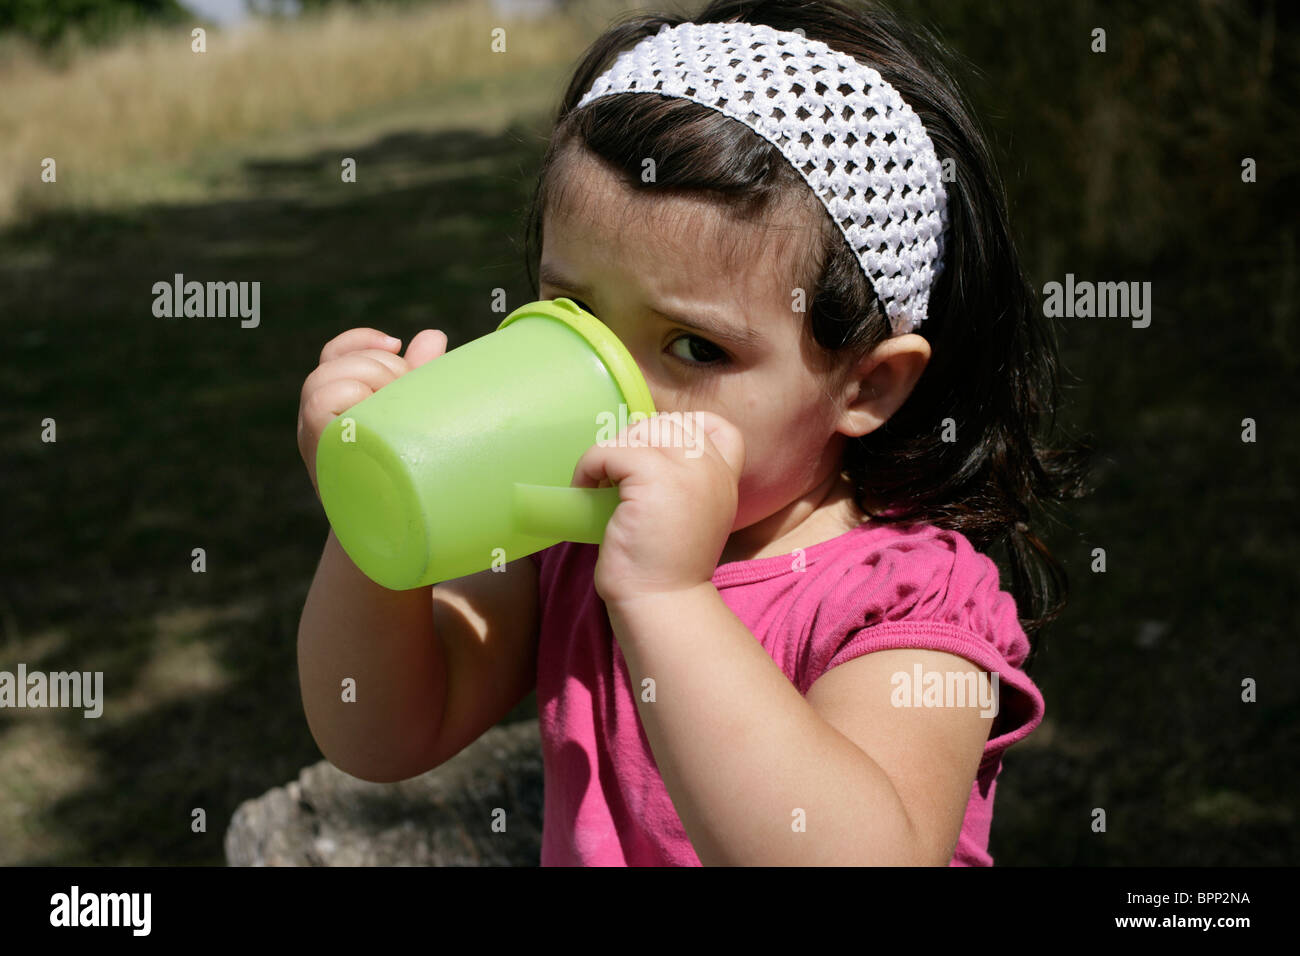 Two-year-old toddler drinking to quench her thirst in the park - Stock Image